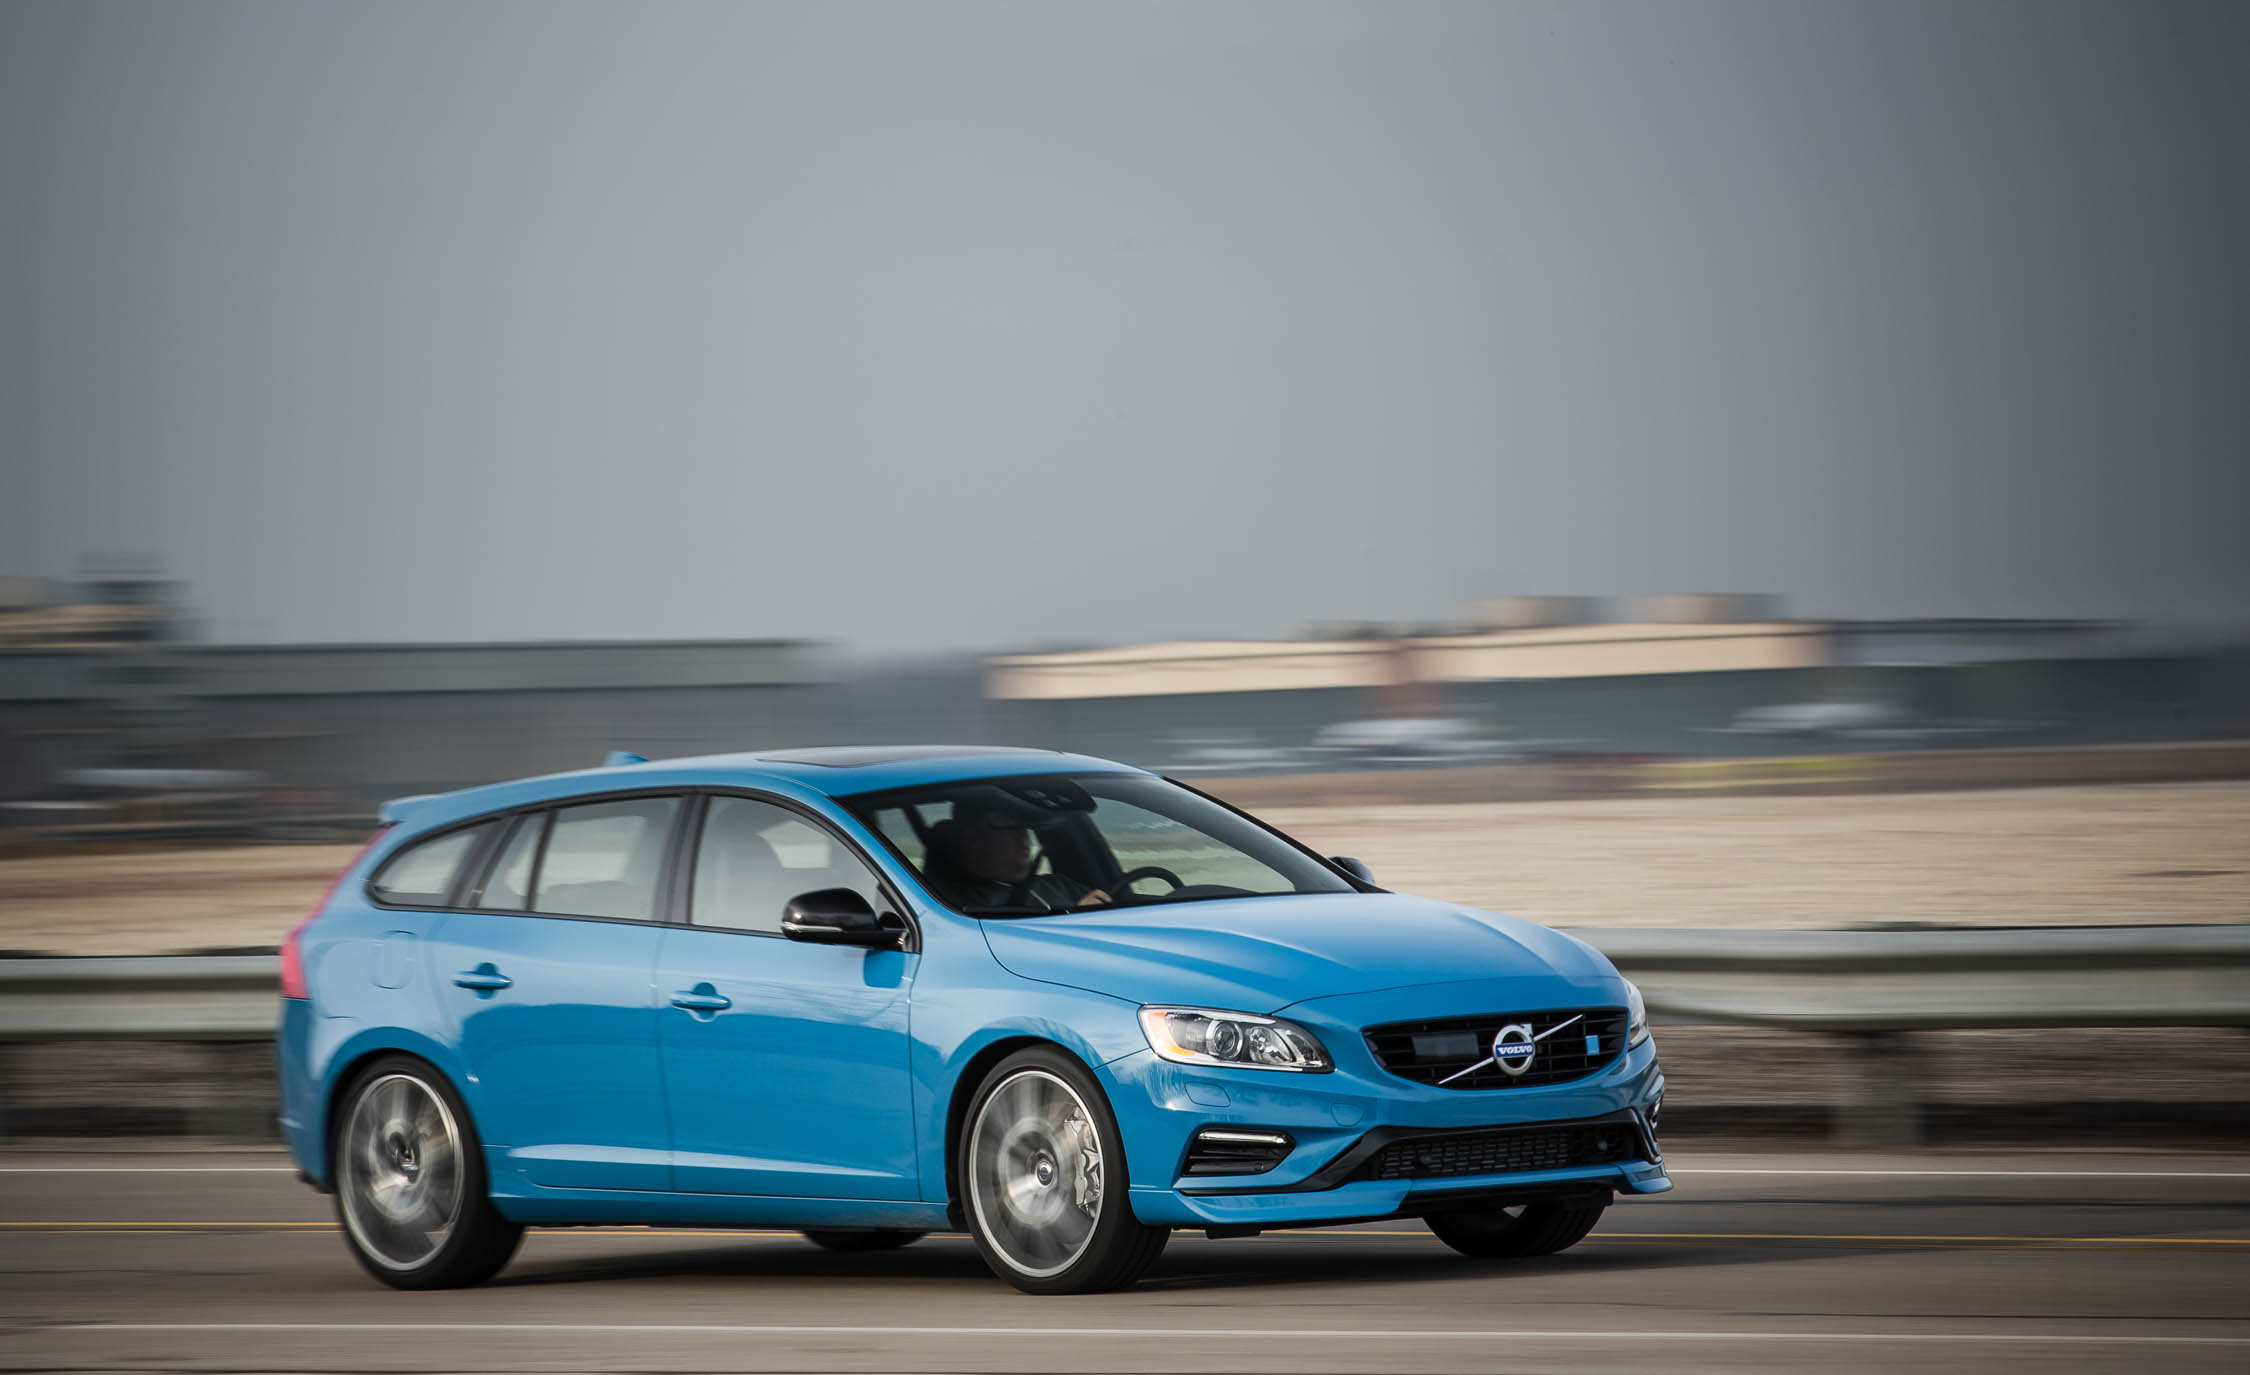 2017 Volvo V60 Polestar Blue Metallic (View 1 of 53)